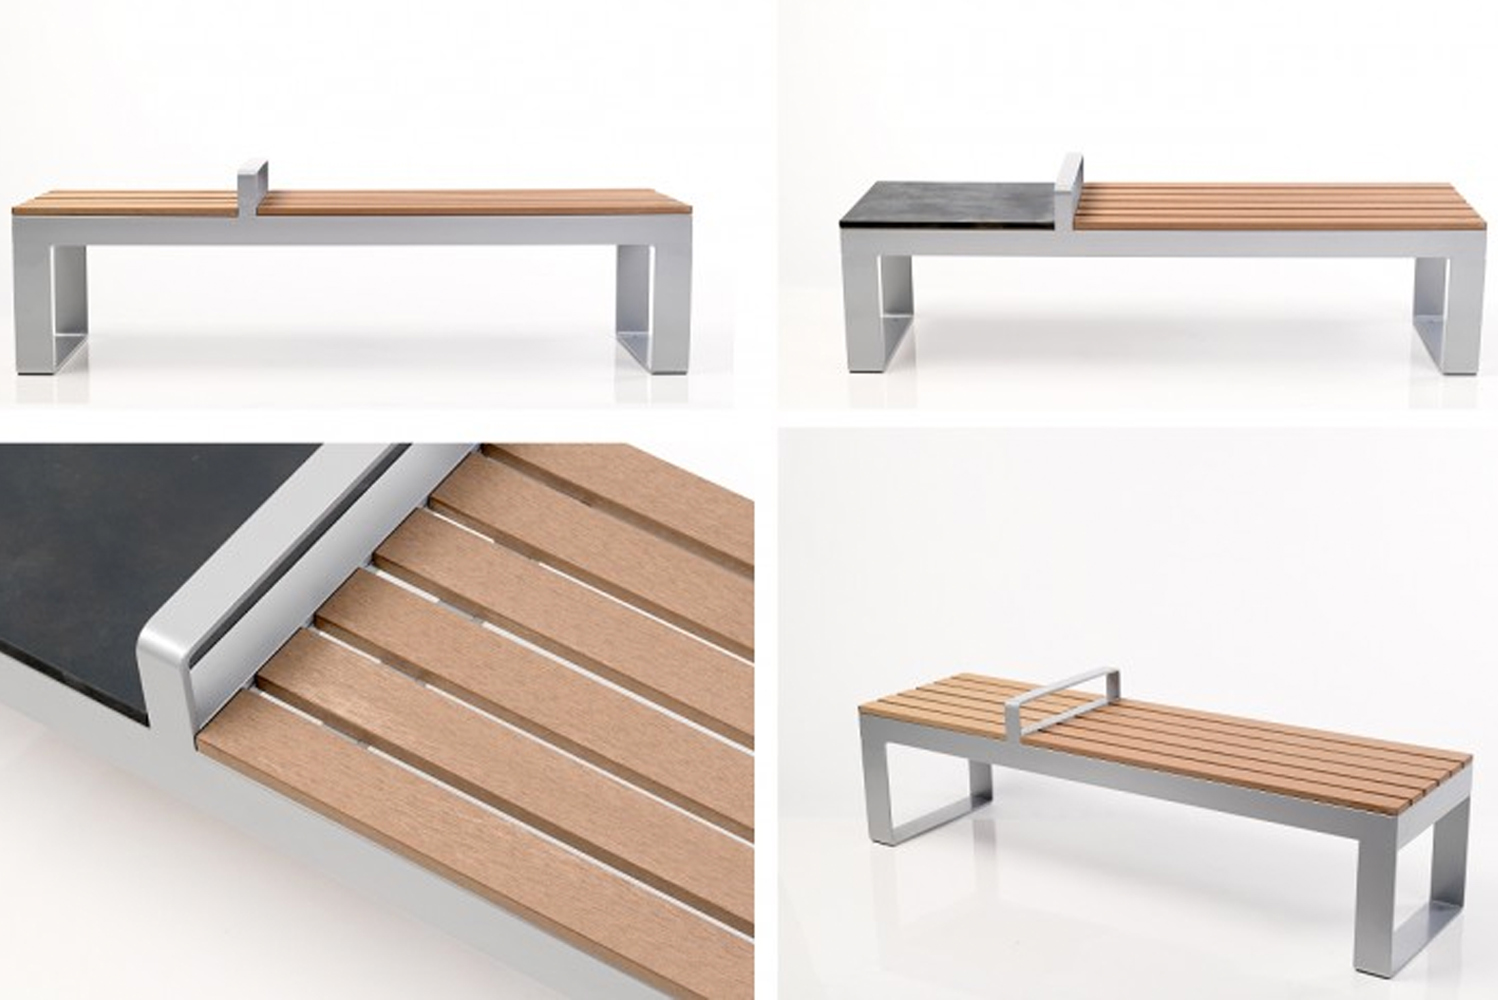 Pak has a solid aluminum frame, and the seat is constructed of recycled composite wood slats with the option of a stone-like section made from recycled materials.